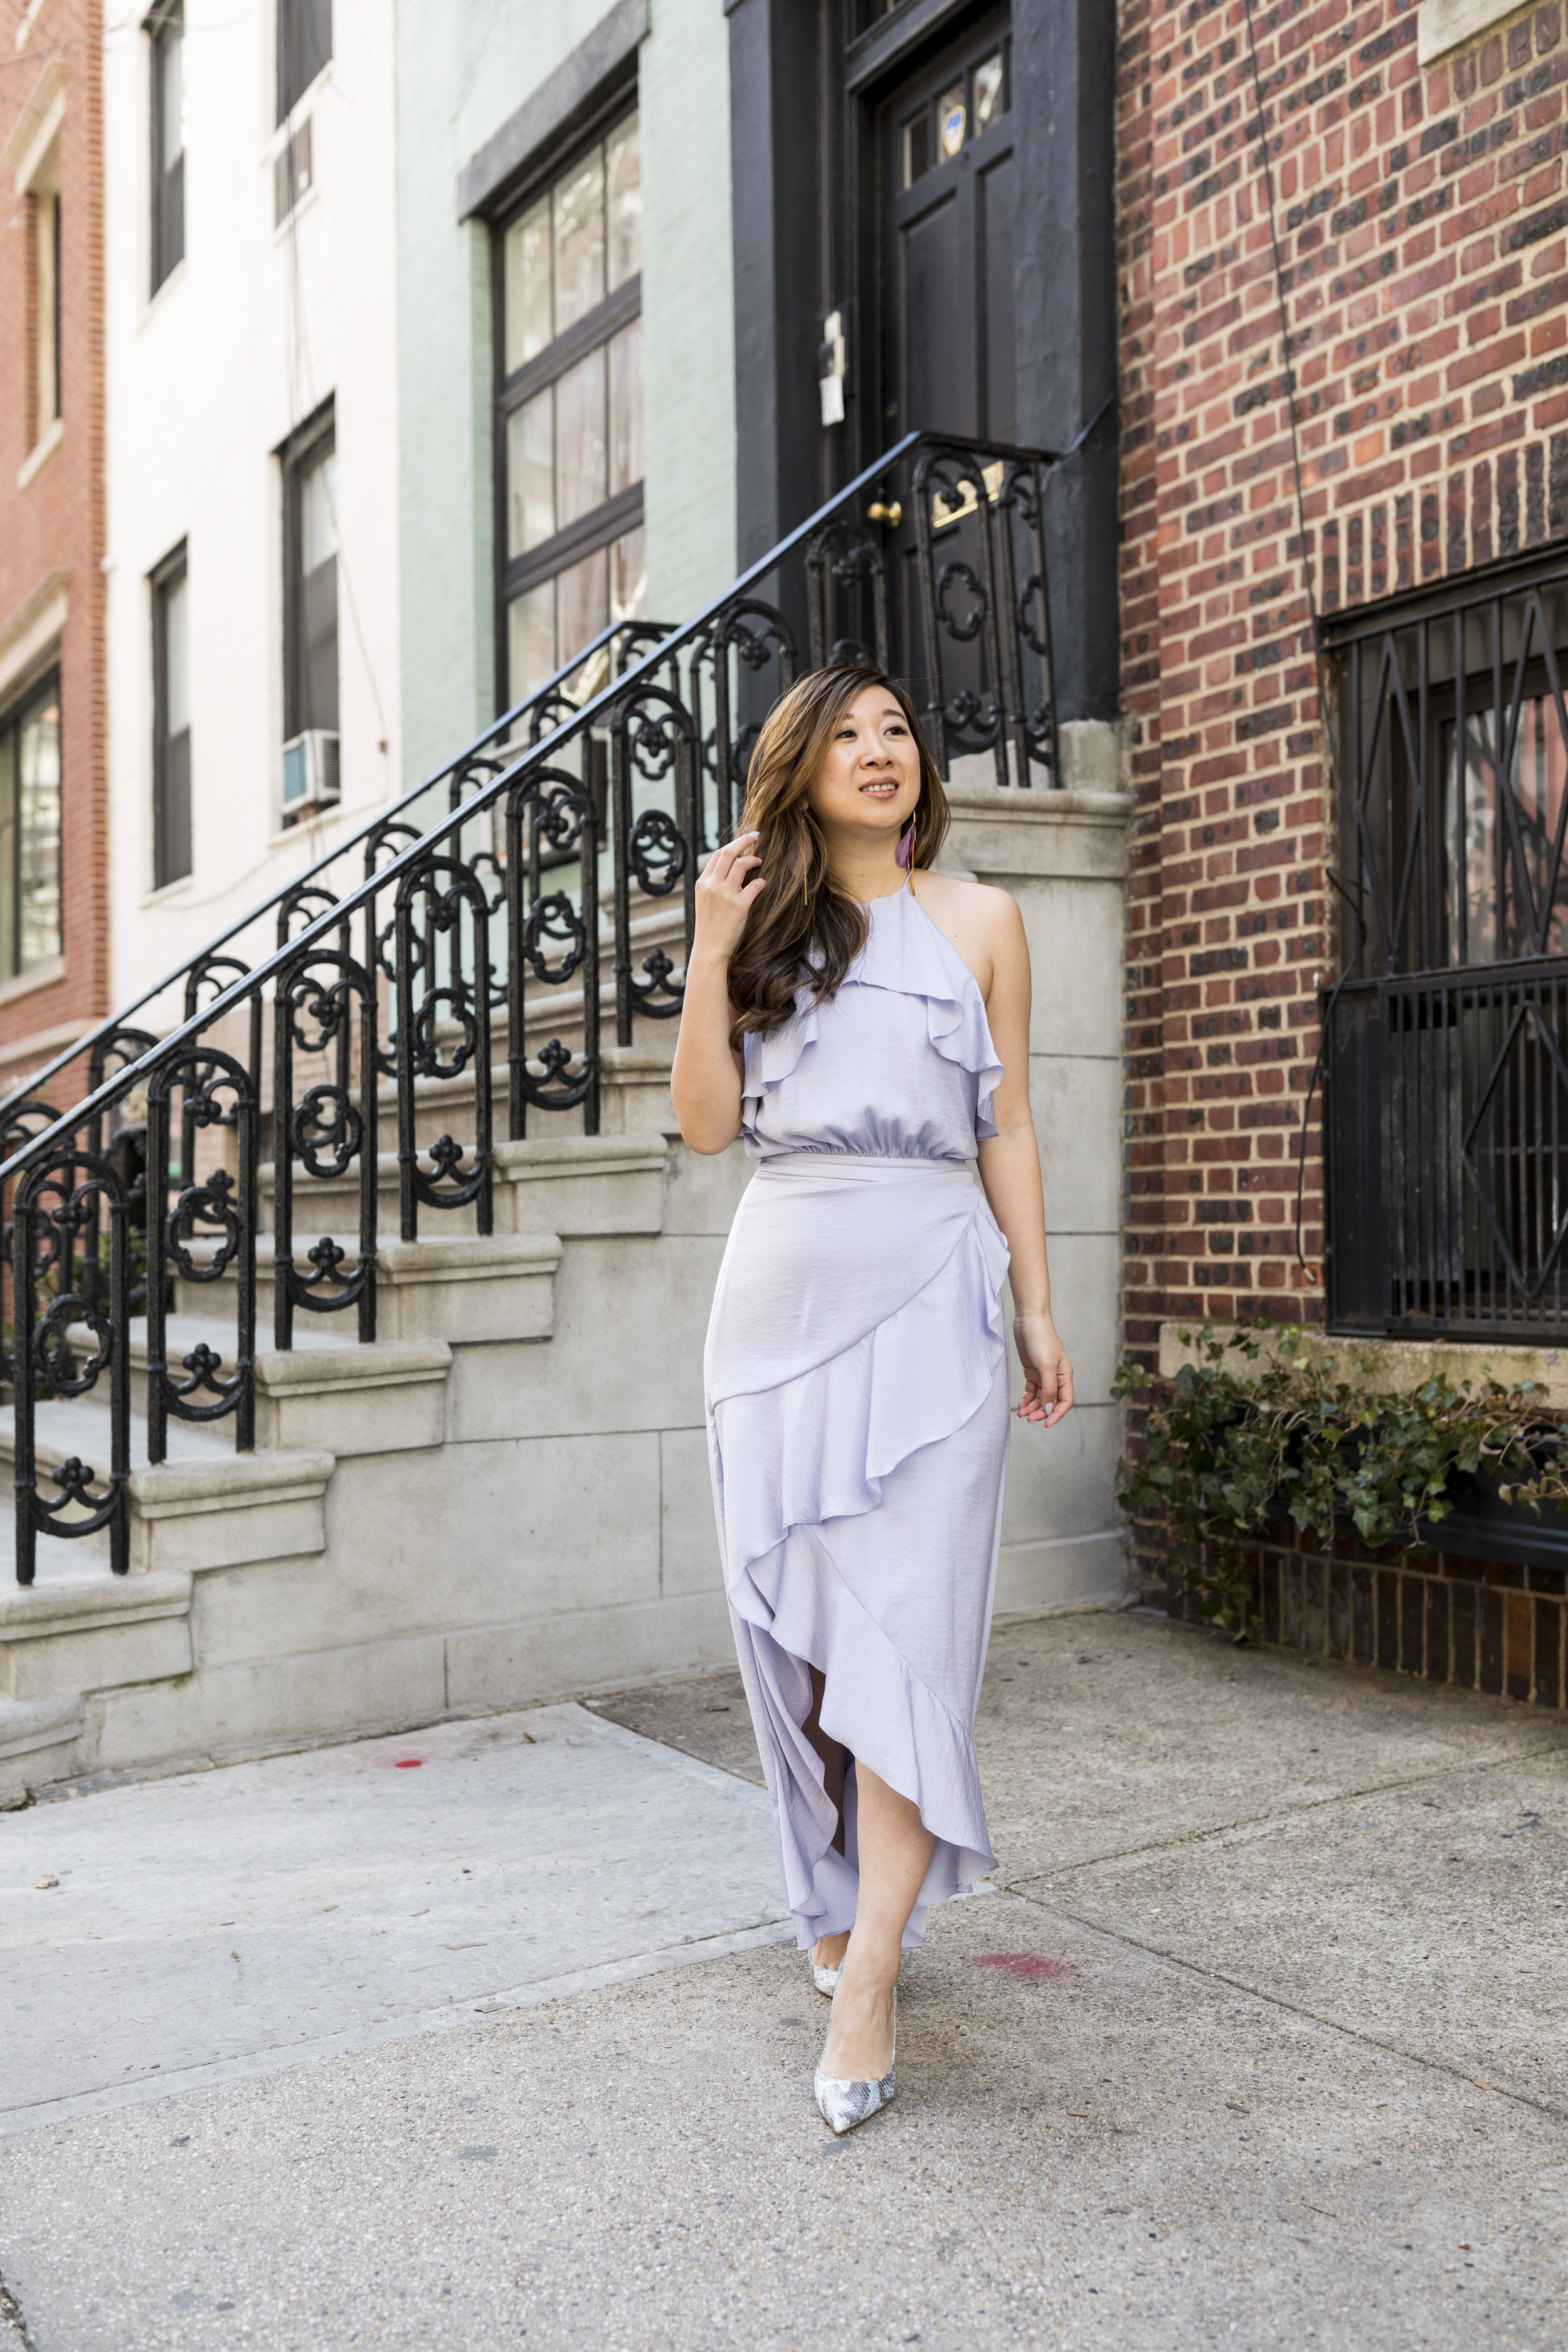 I rented this lavender dress from Rent the Runway; photo by Ashley Gallerani.